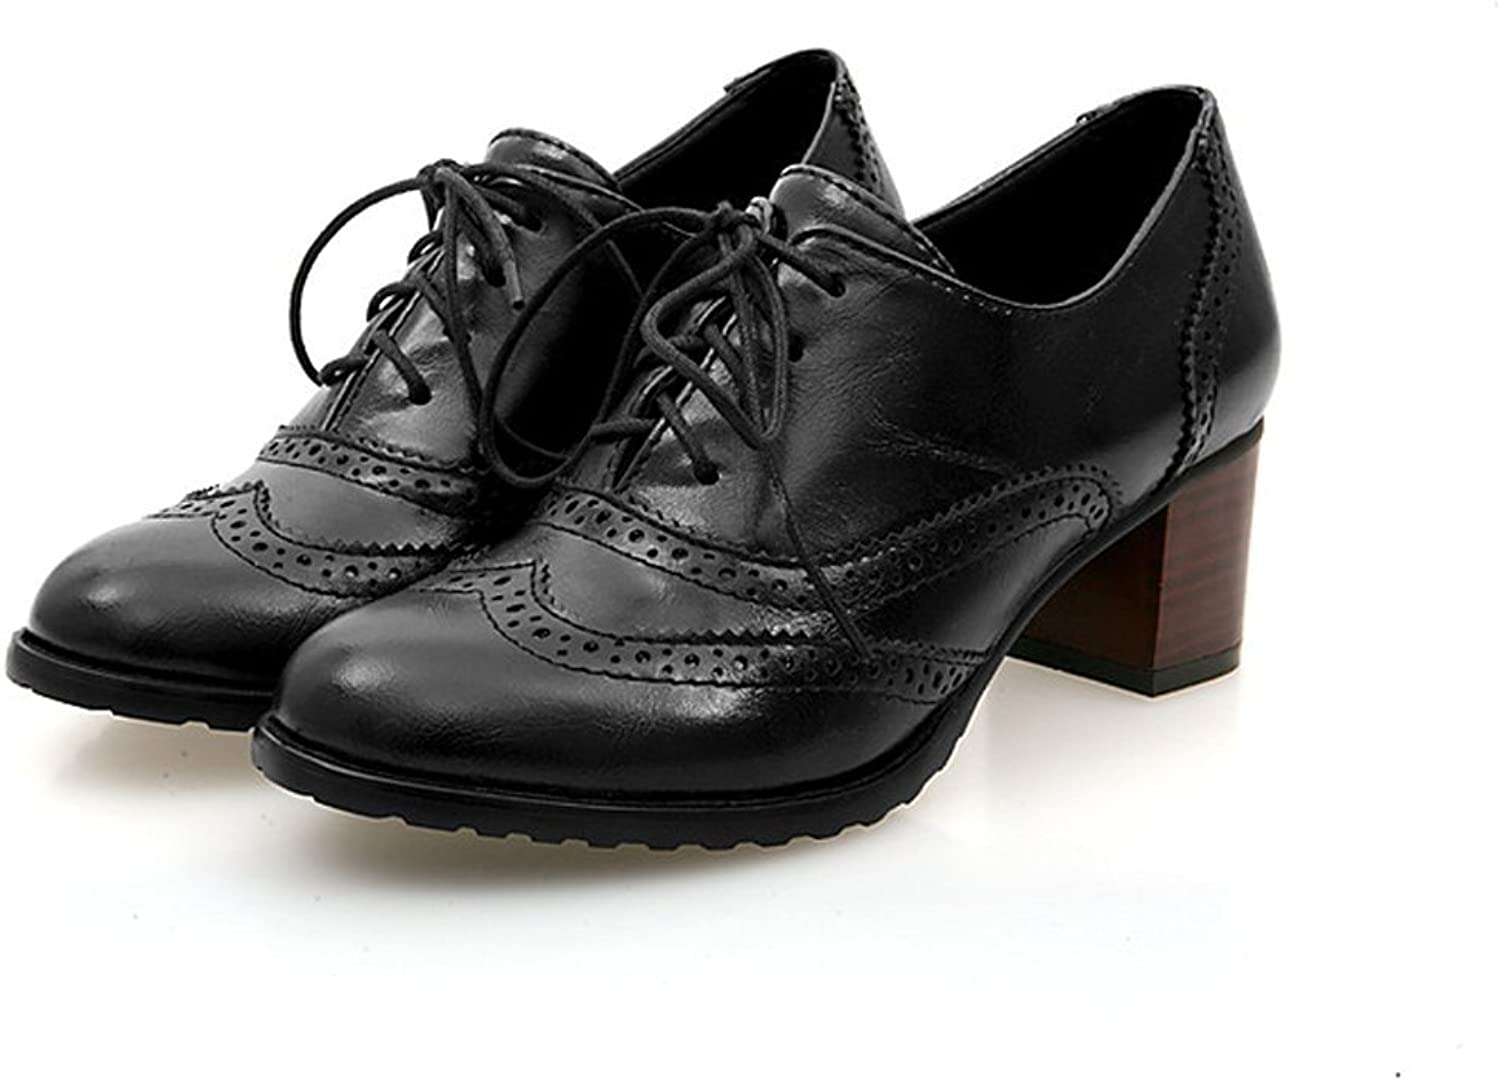 Milesline England Brogue shoes Womens Lace-up Mid Heel Wingtip Oxfords Vintage PU Leather shoes